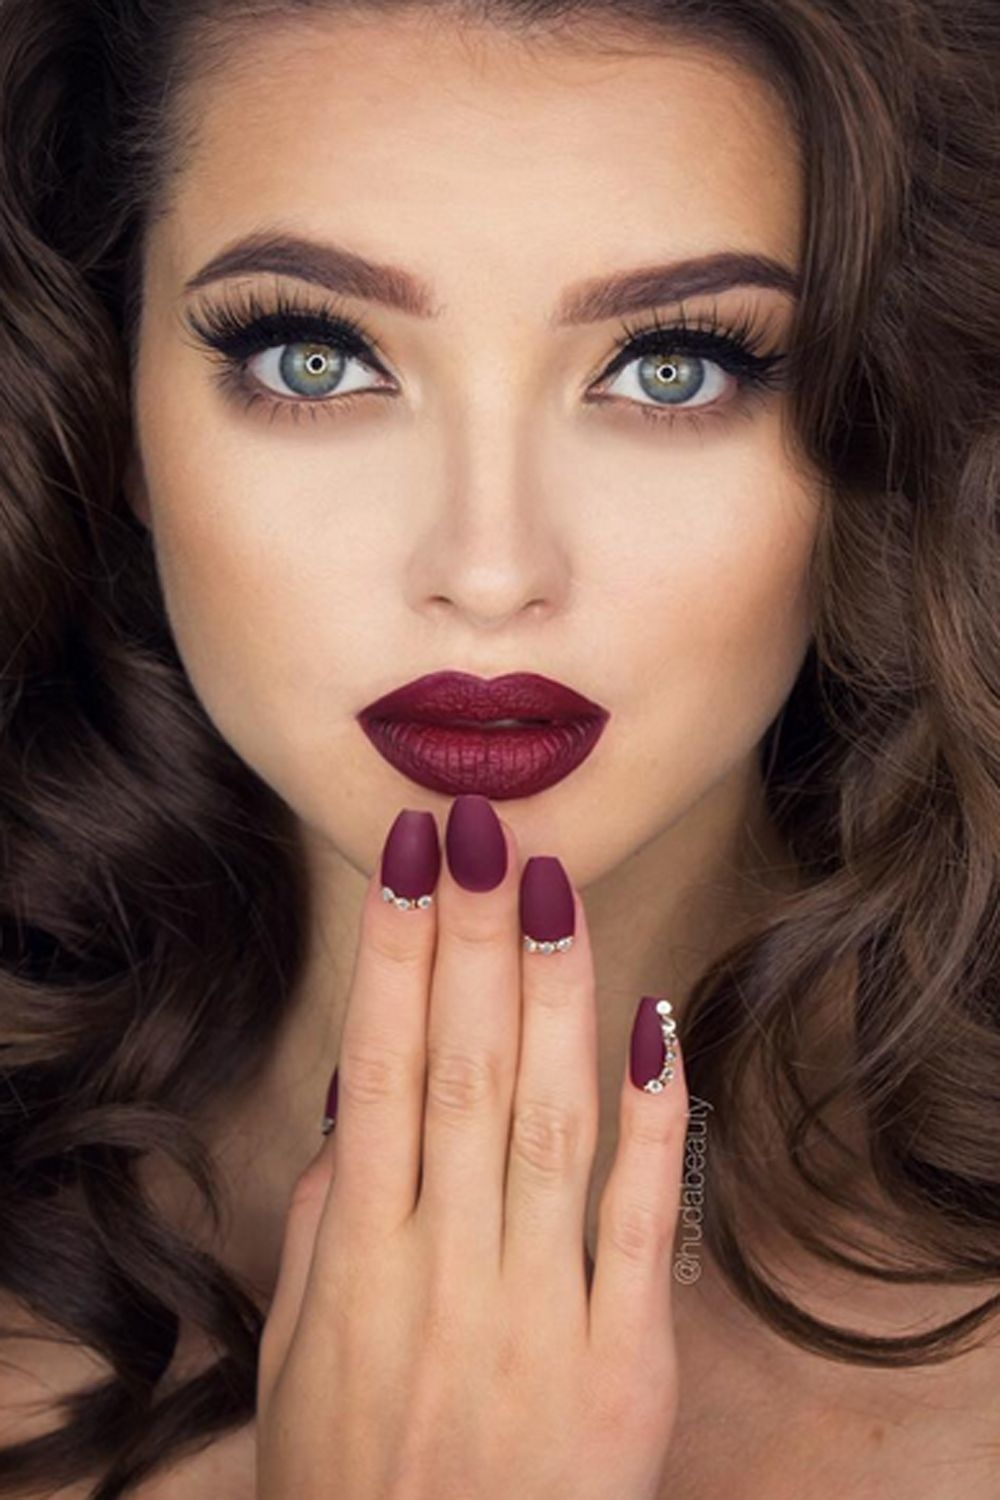 lipstick Stunning Red Lipstick Makeup Ideas stunning red lipstick makeup ideas 0